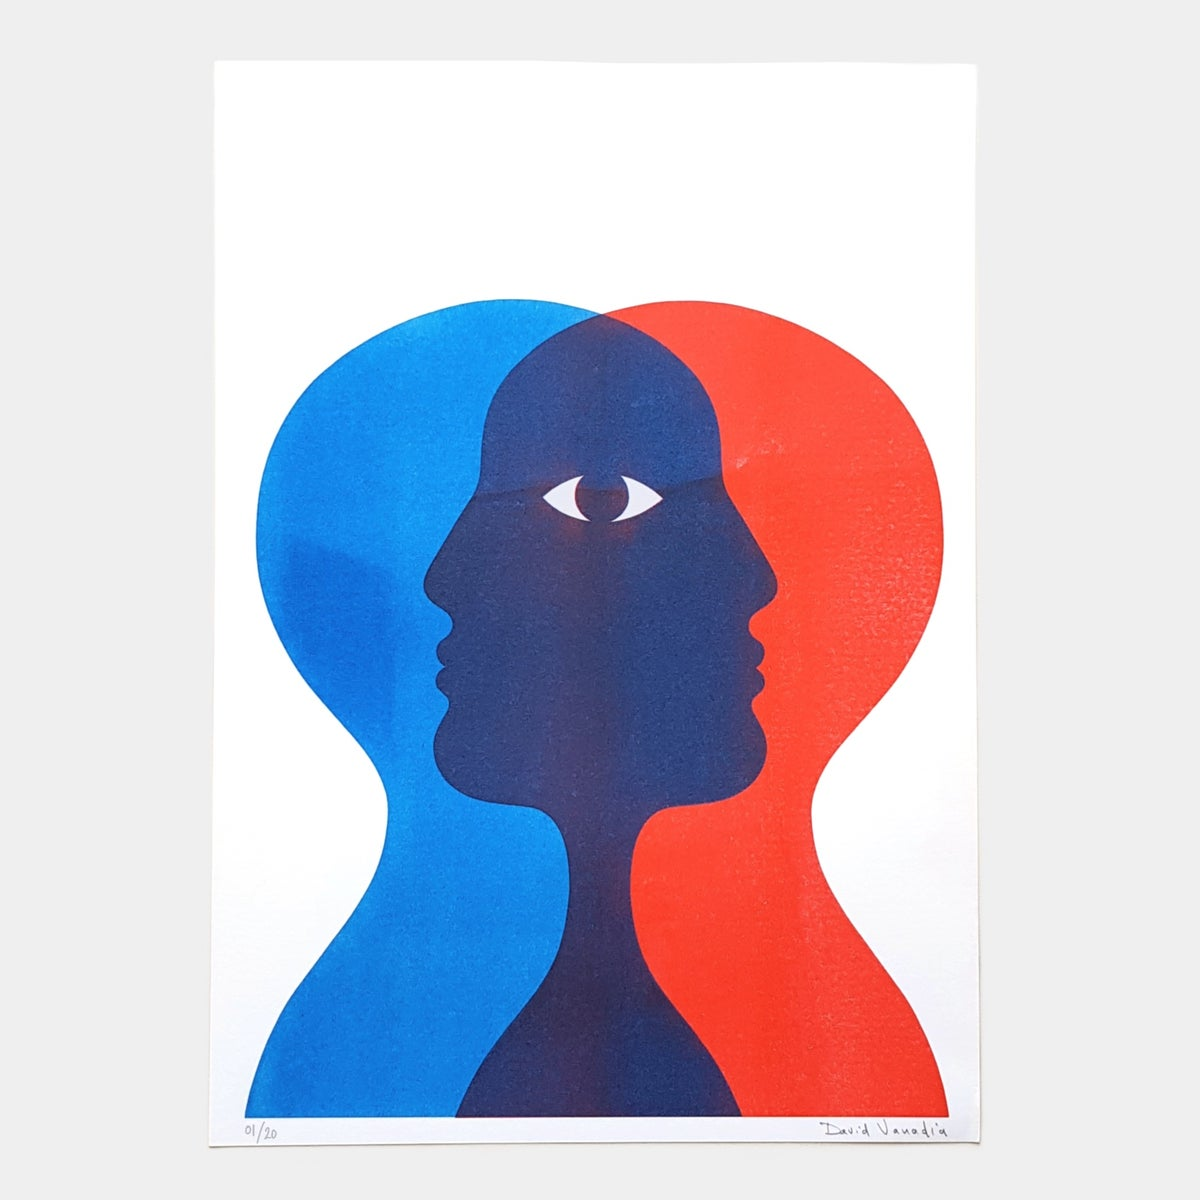 Image of Limited edition riso print 30 x 42 cm 'Double Je'